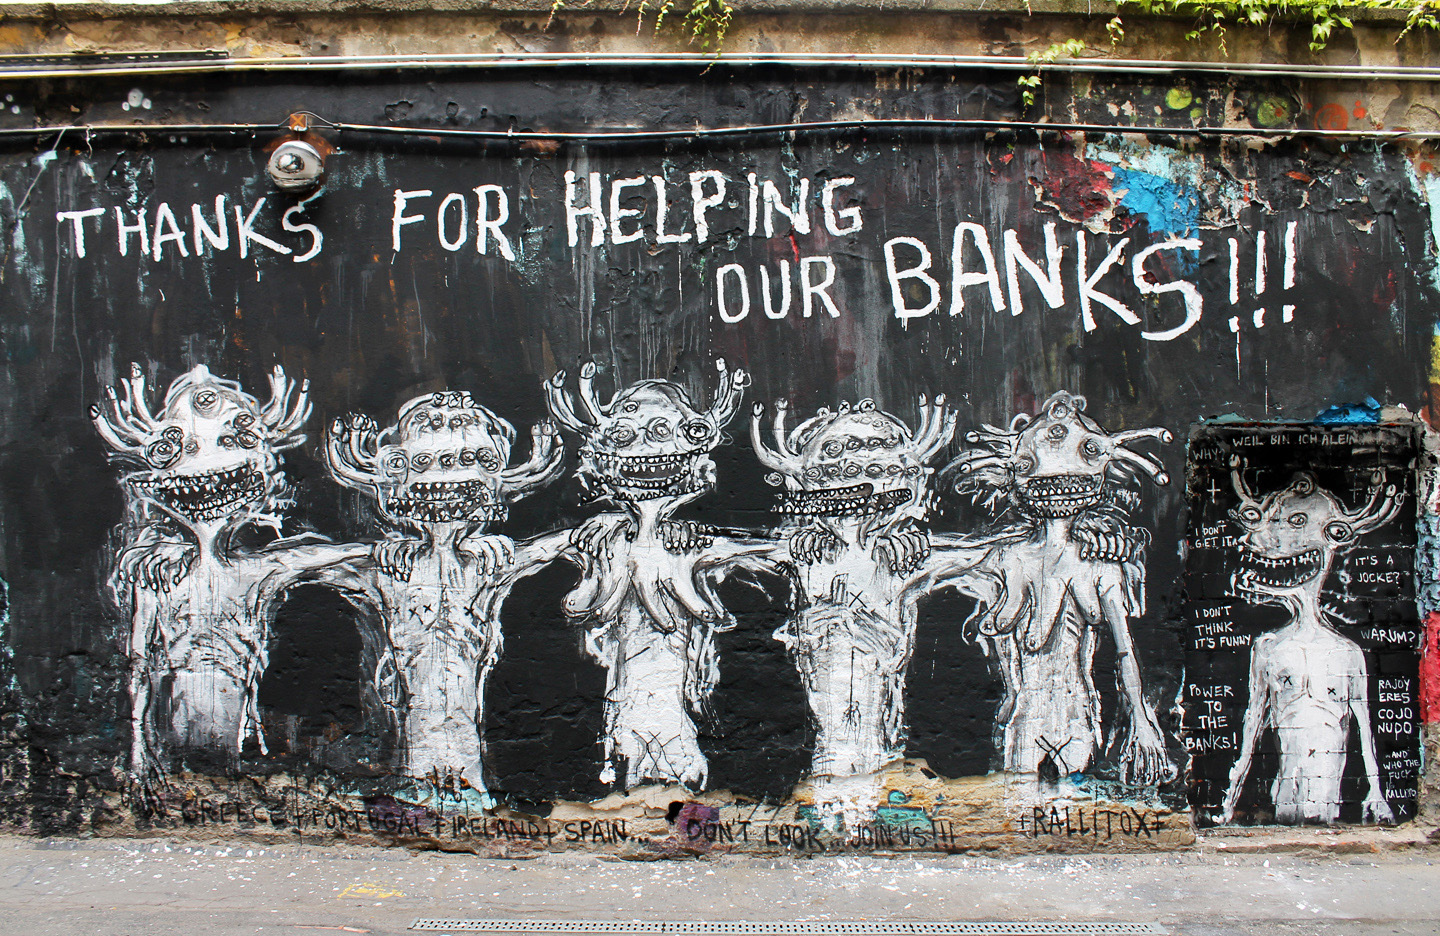 Street Art Berlin - Rallitox: Thanks for helping our Banks - Photos and Report by Street Art BLN